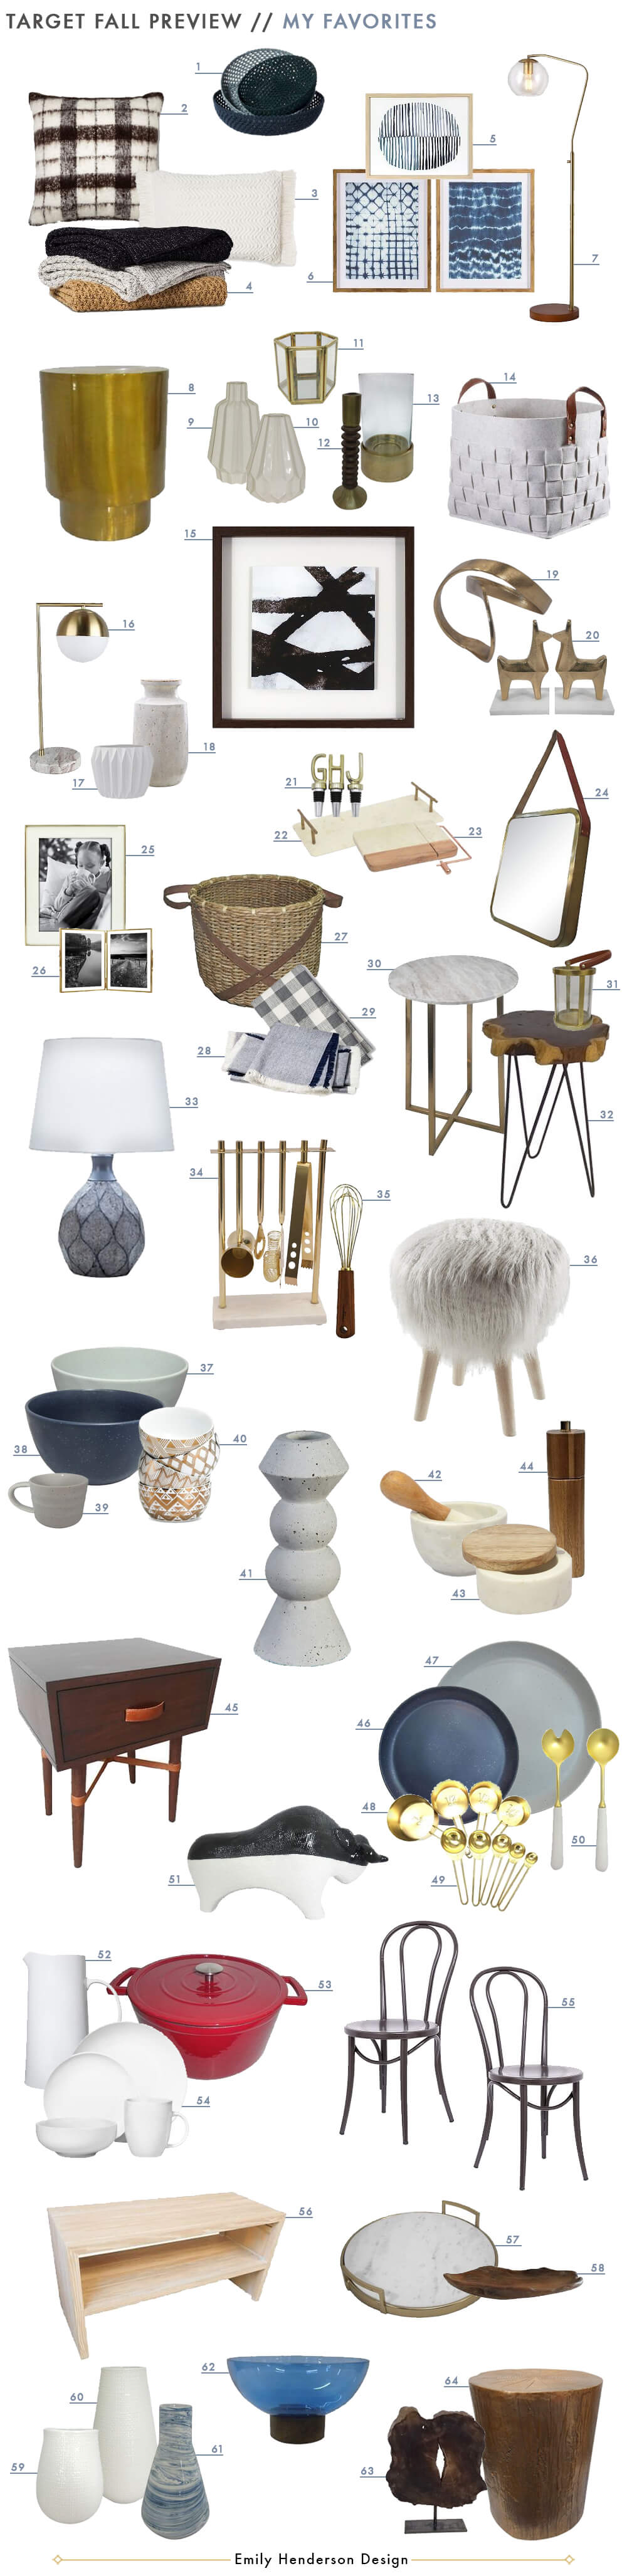 the new target fall style collection emily henderson preview emilys favorites get look threshold nate berkus home decor cast metal accent table small battery operated lamps ikea